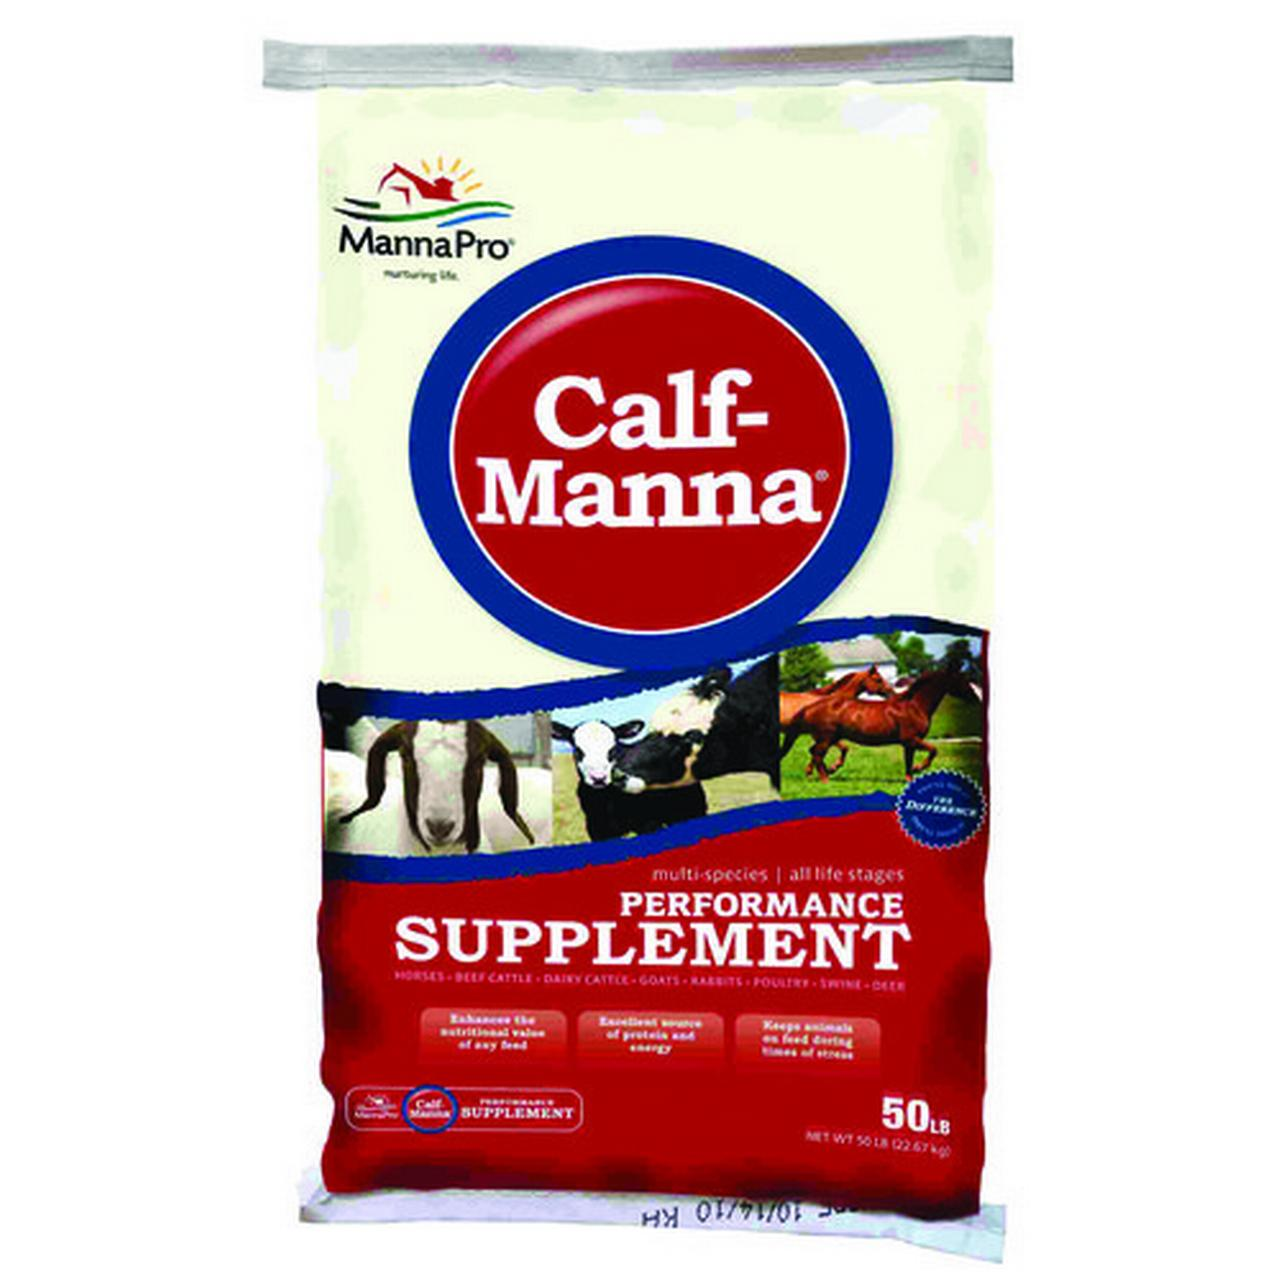 Manna Pro-farm-Calf Manna Performance Supplement 50 Pound